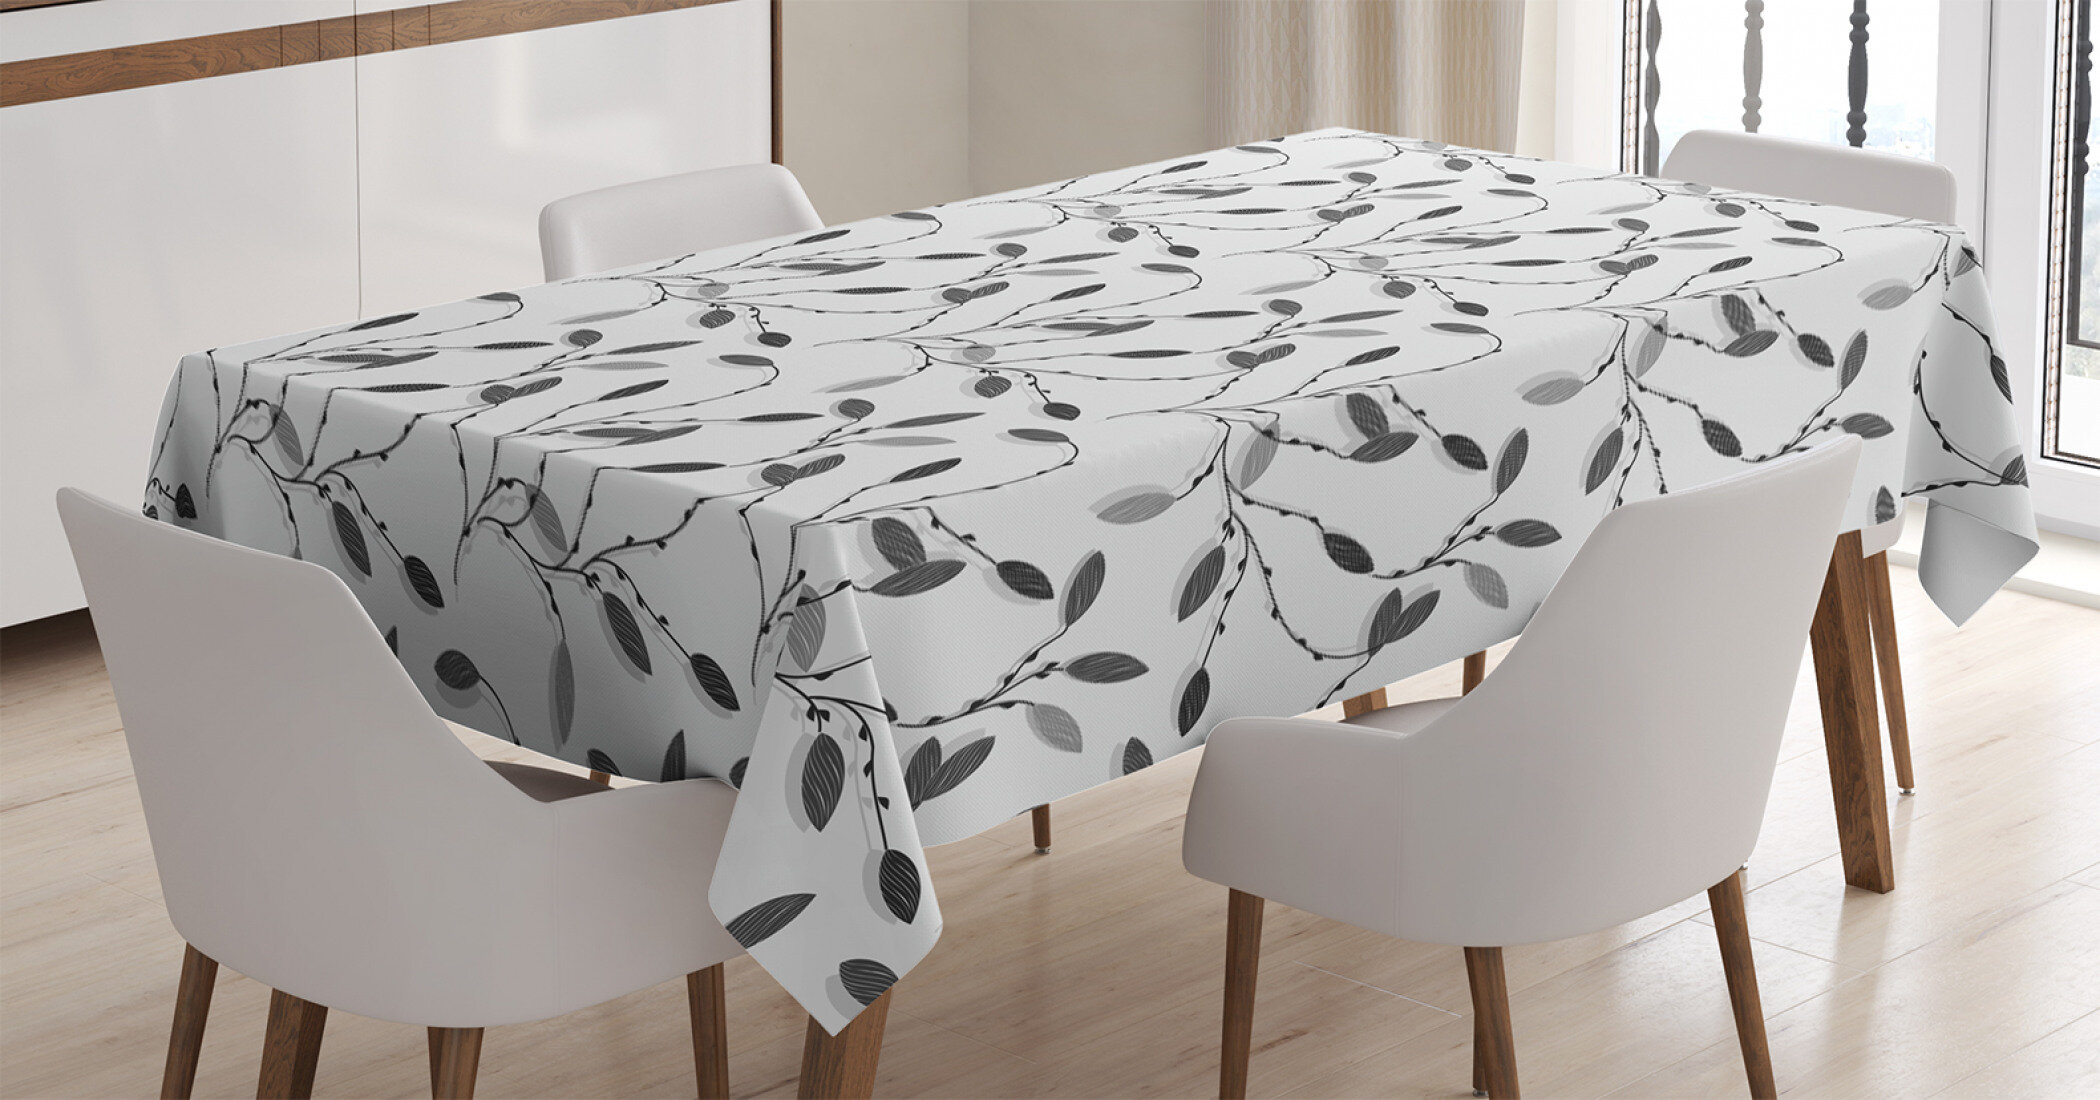 Woven All Table Linens You Ll Love In 2021 Wayfair